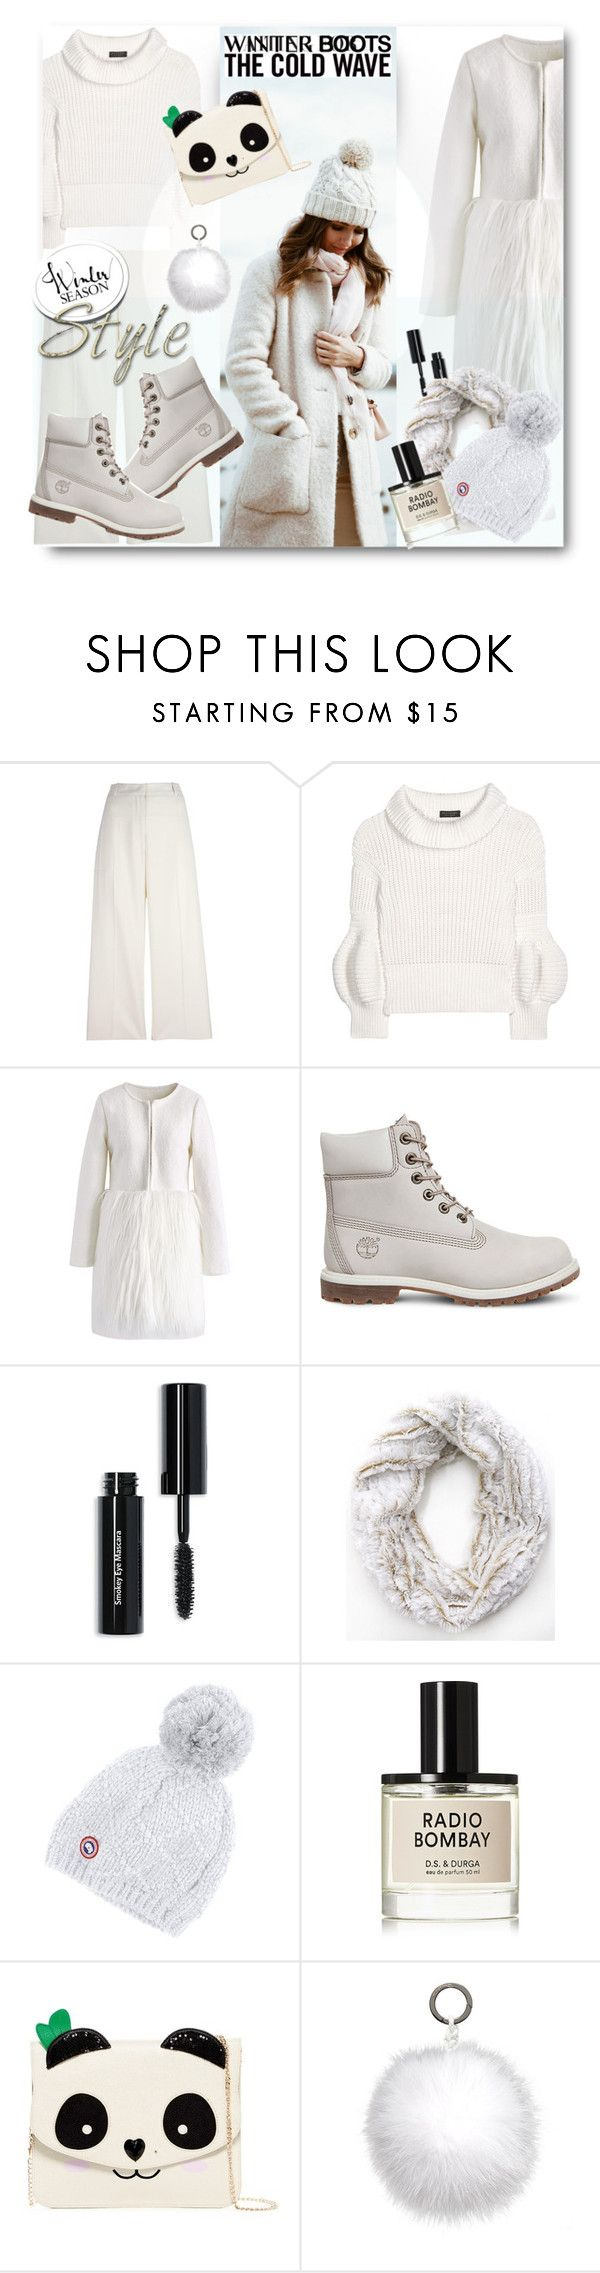 """""""Cozy Winter Boots"""" by esch103 ❤ liked on Polyvore featuring Ermanno Scervino, Burberry, Chicwish, Timberland, Bobbi Brown Cosmetics, Canada Goose, D.S. & DURGA, Betsey Johnson, Oscar de la Renta and winterboots"""